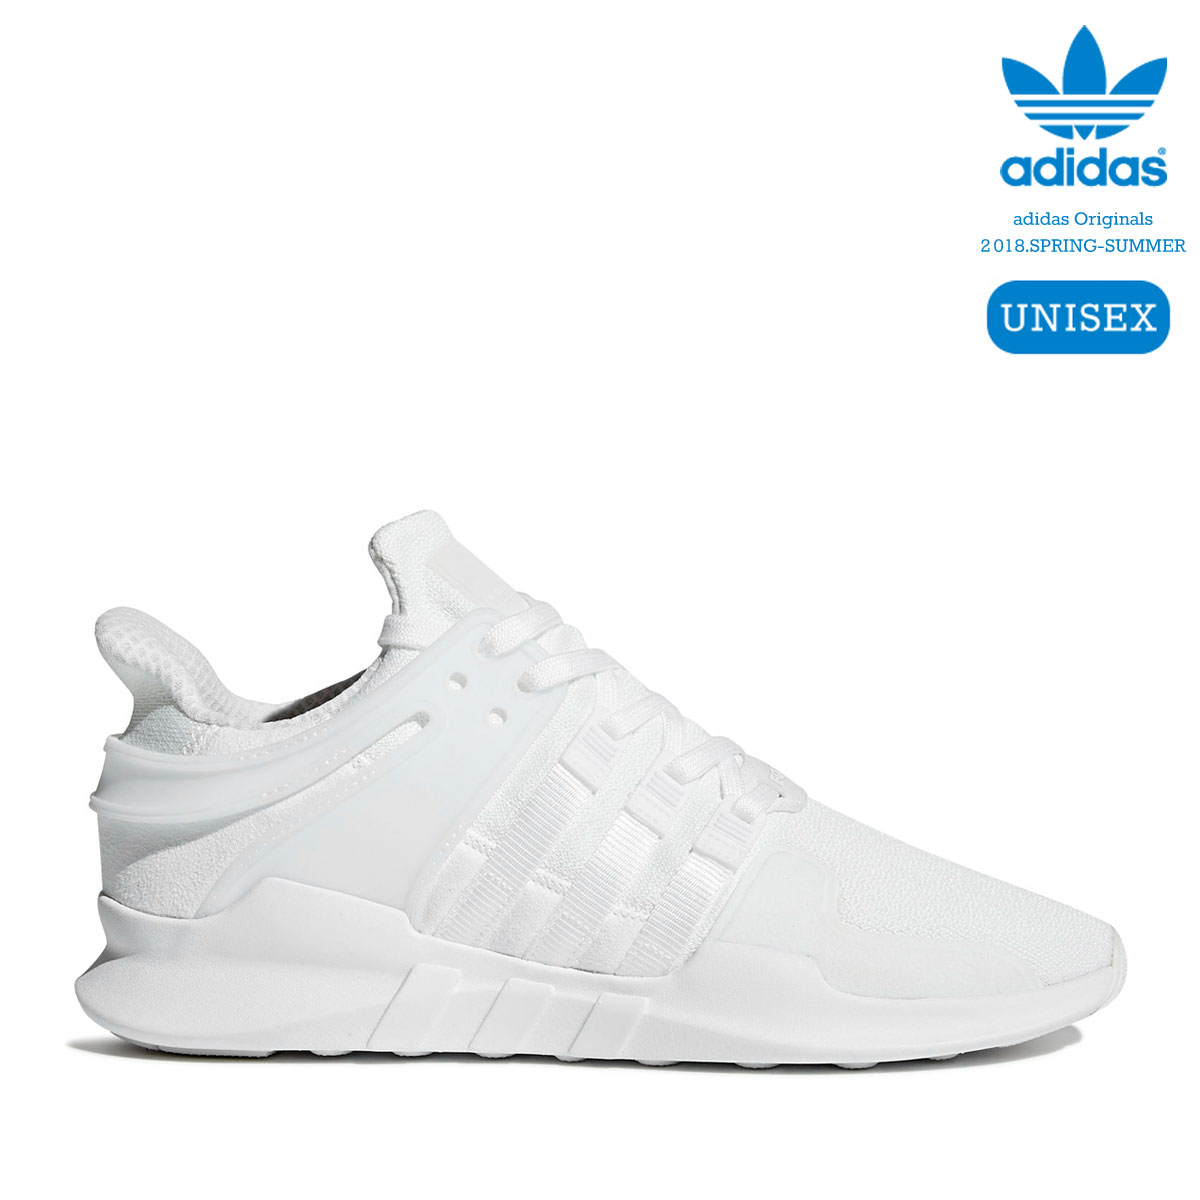 adidas Originals EQT SUPPORT ADV (Running White/Running White/Core Black) 【メンズサイズ】【18SS-I】【20】【sale0123】